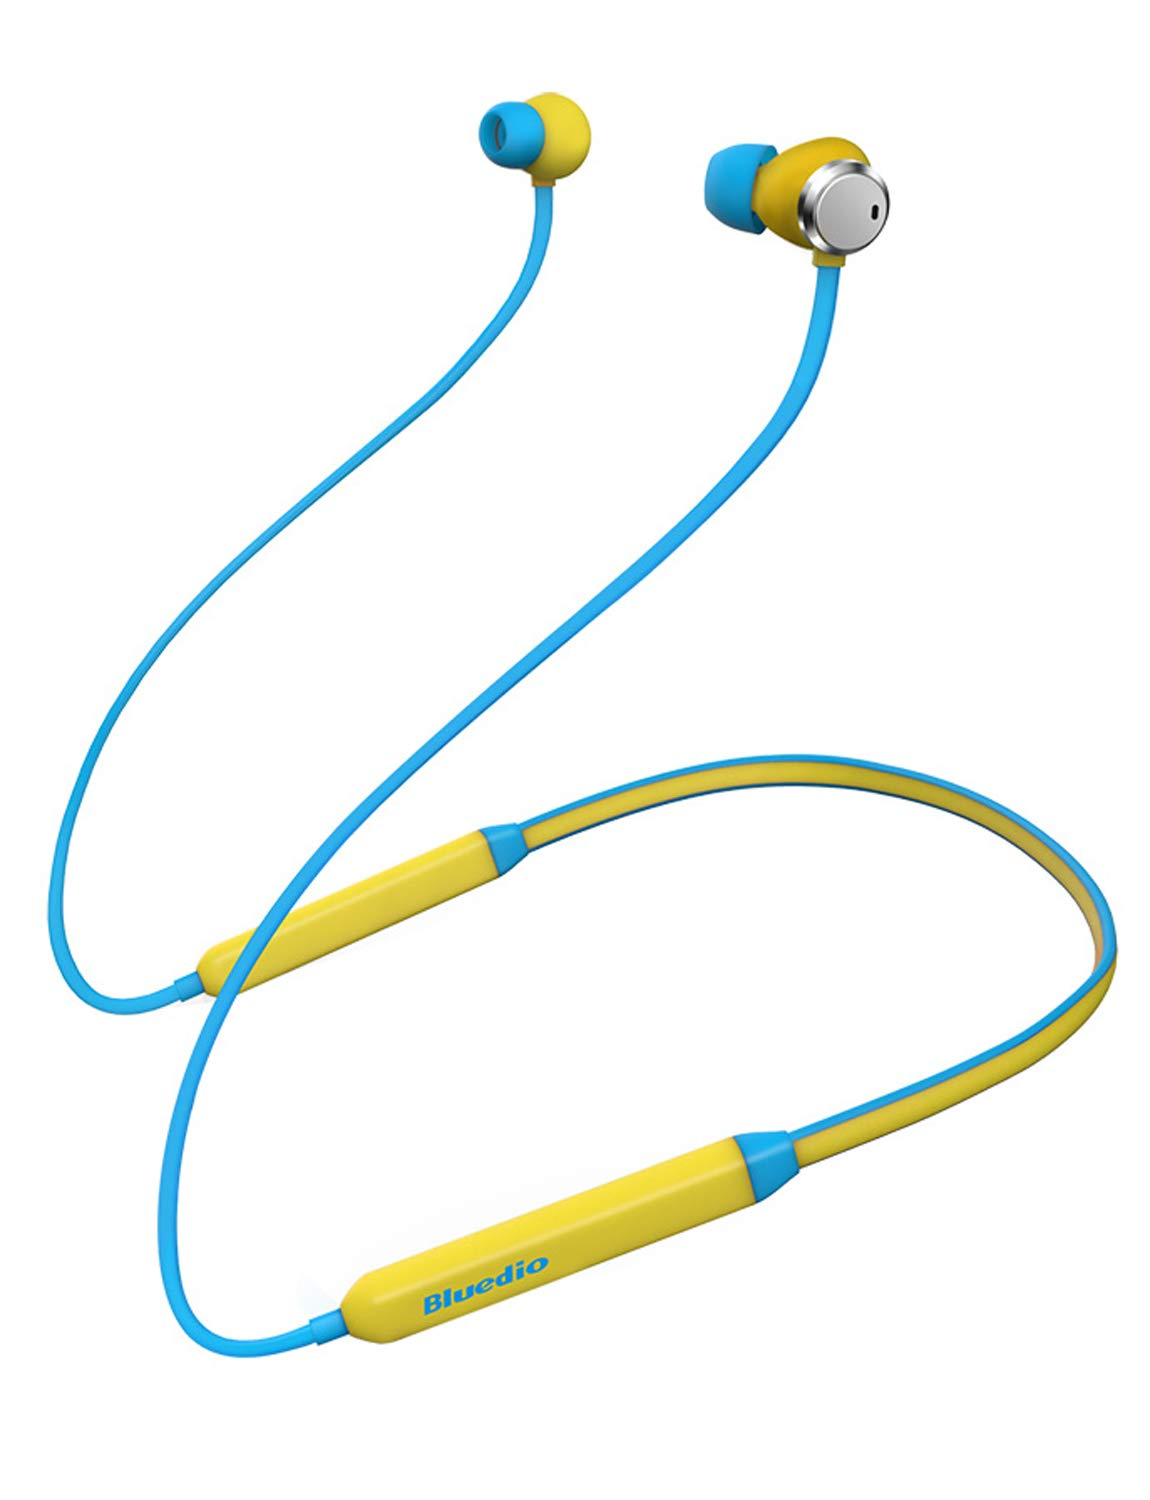 Bluedio TN (Turbine) Active Noise Cancelling Earbuds Neckband Earphones, Bluetooth 4.2 Wireless Sports Headphones Headsets,Magnetic Sweatproof Running Earbuds with Mic Magnetic Design (Yellow)